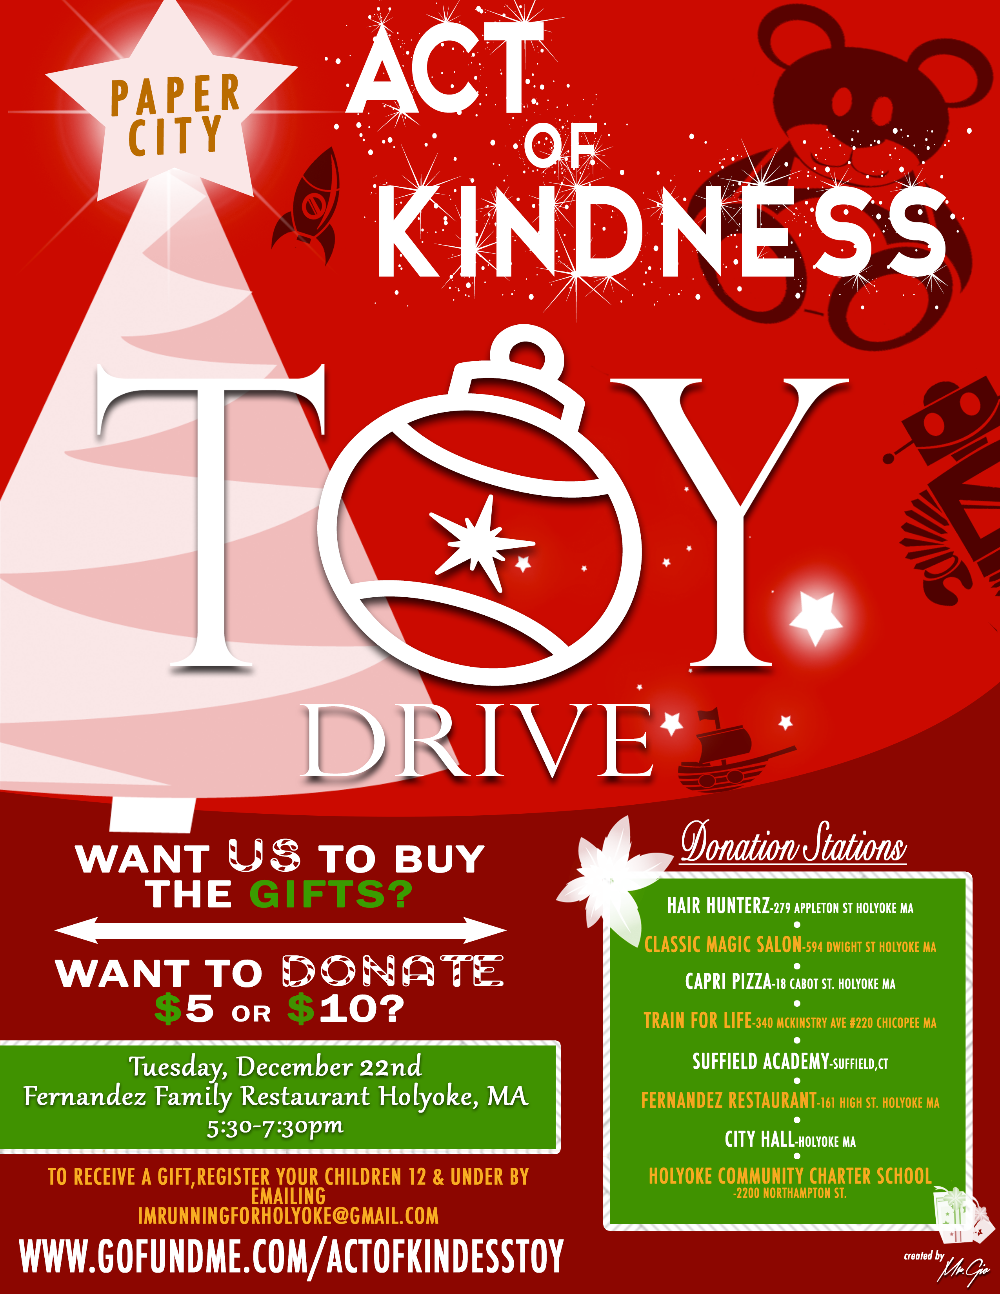 Announcement Email Sample Toys For Tots : Fundraiser by harry melendez holyoke act of kindness toy